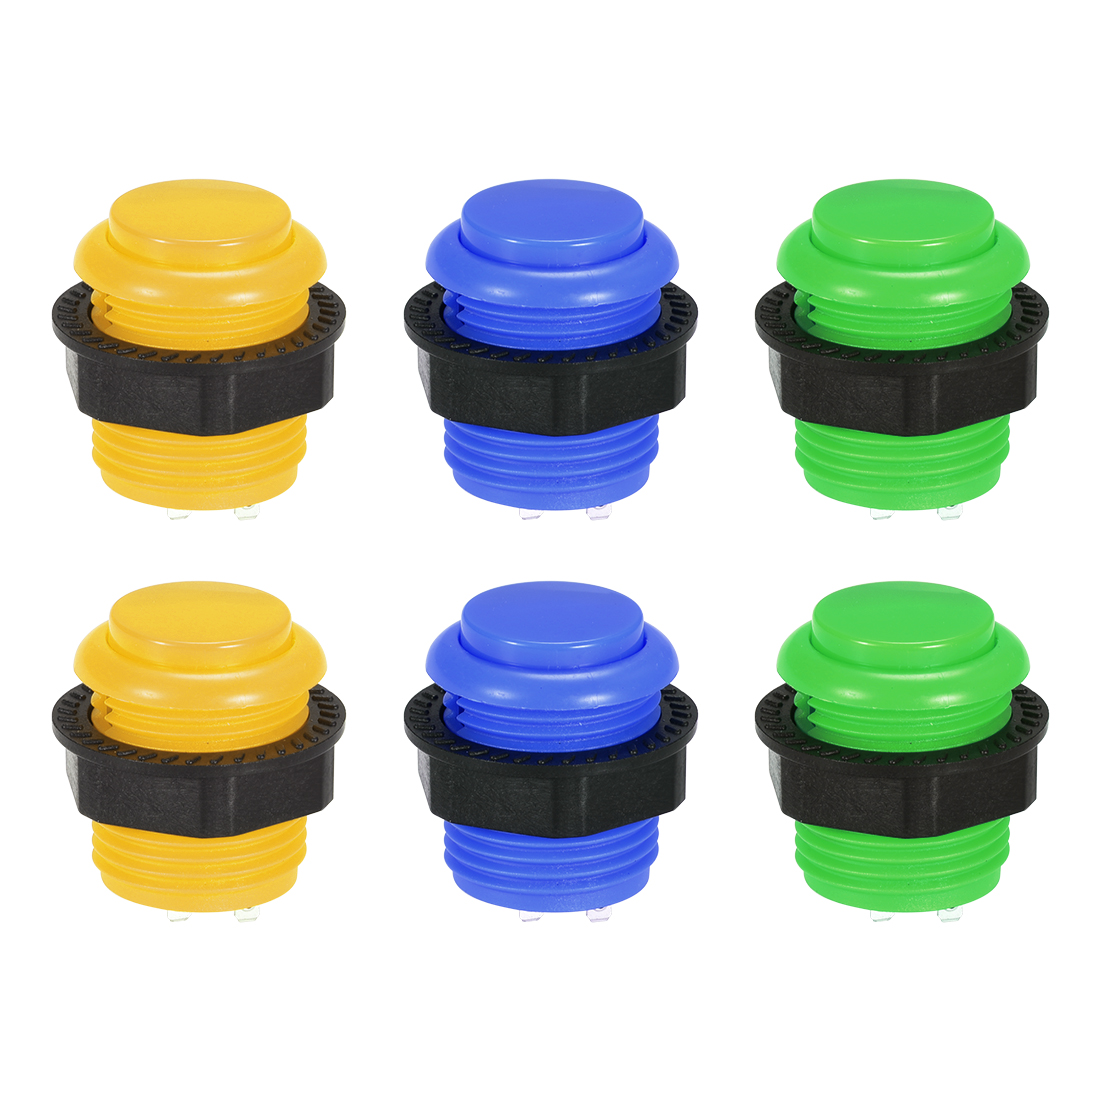 23.6mm Mounting Hole Momentary Game Push Button Switch 3 Colors 6pcs